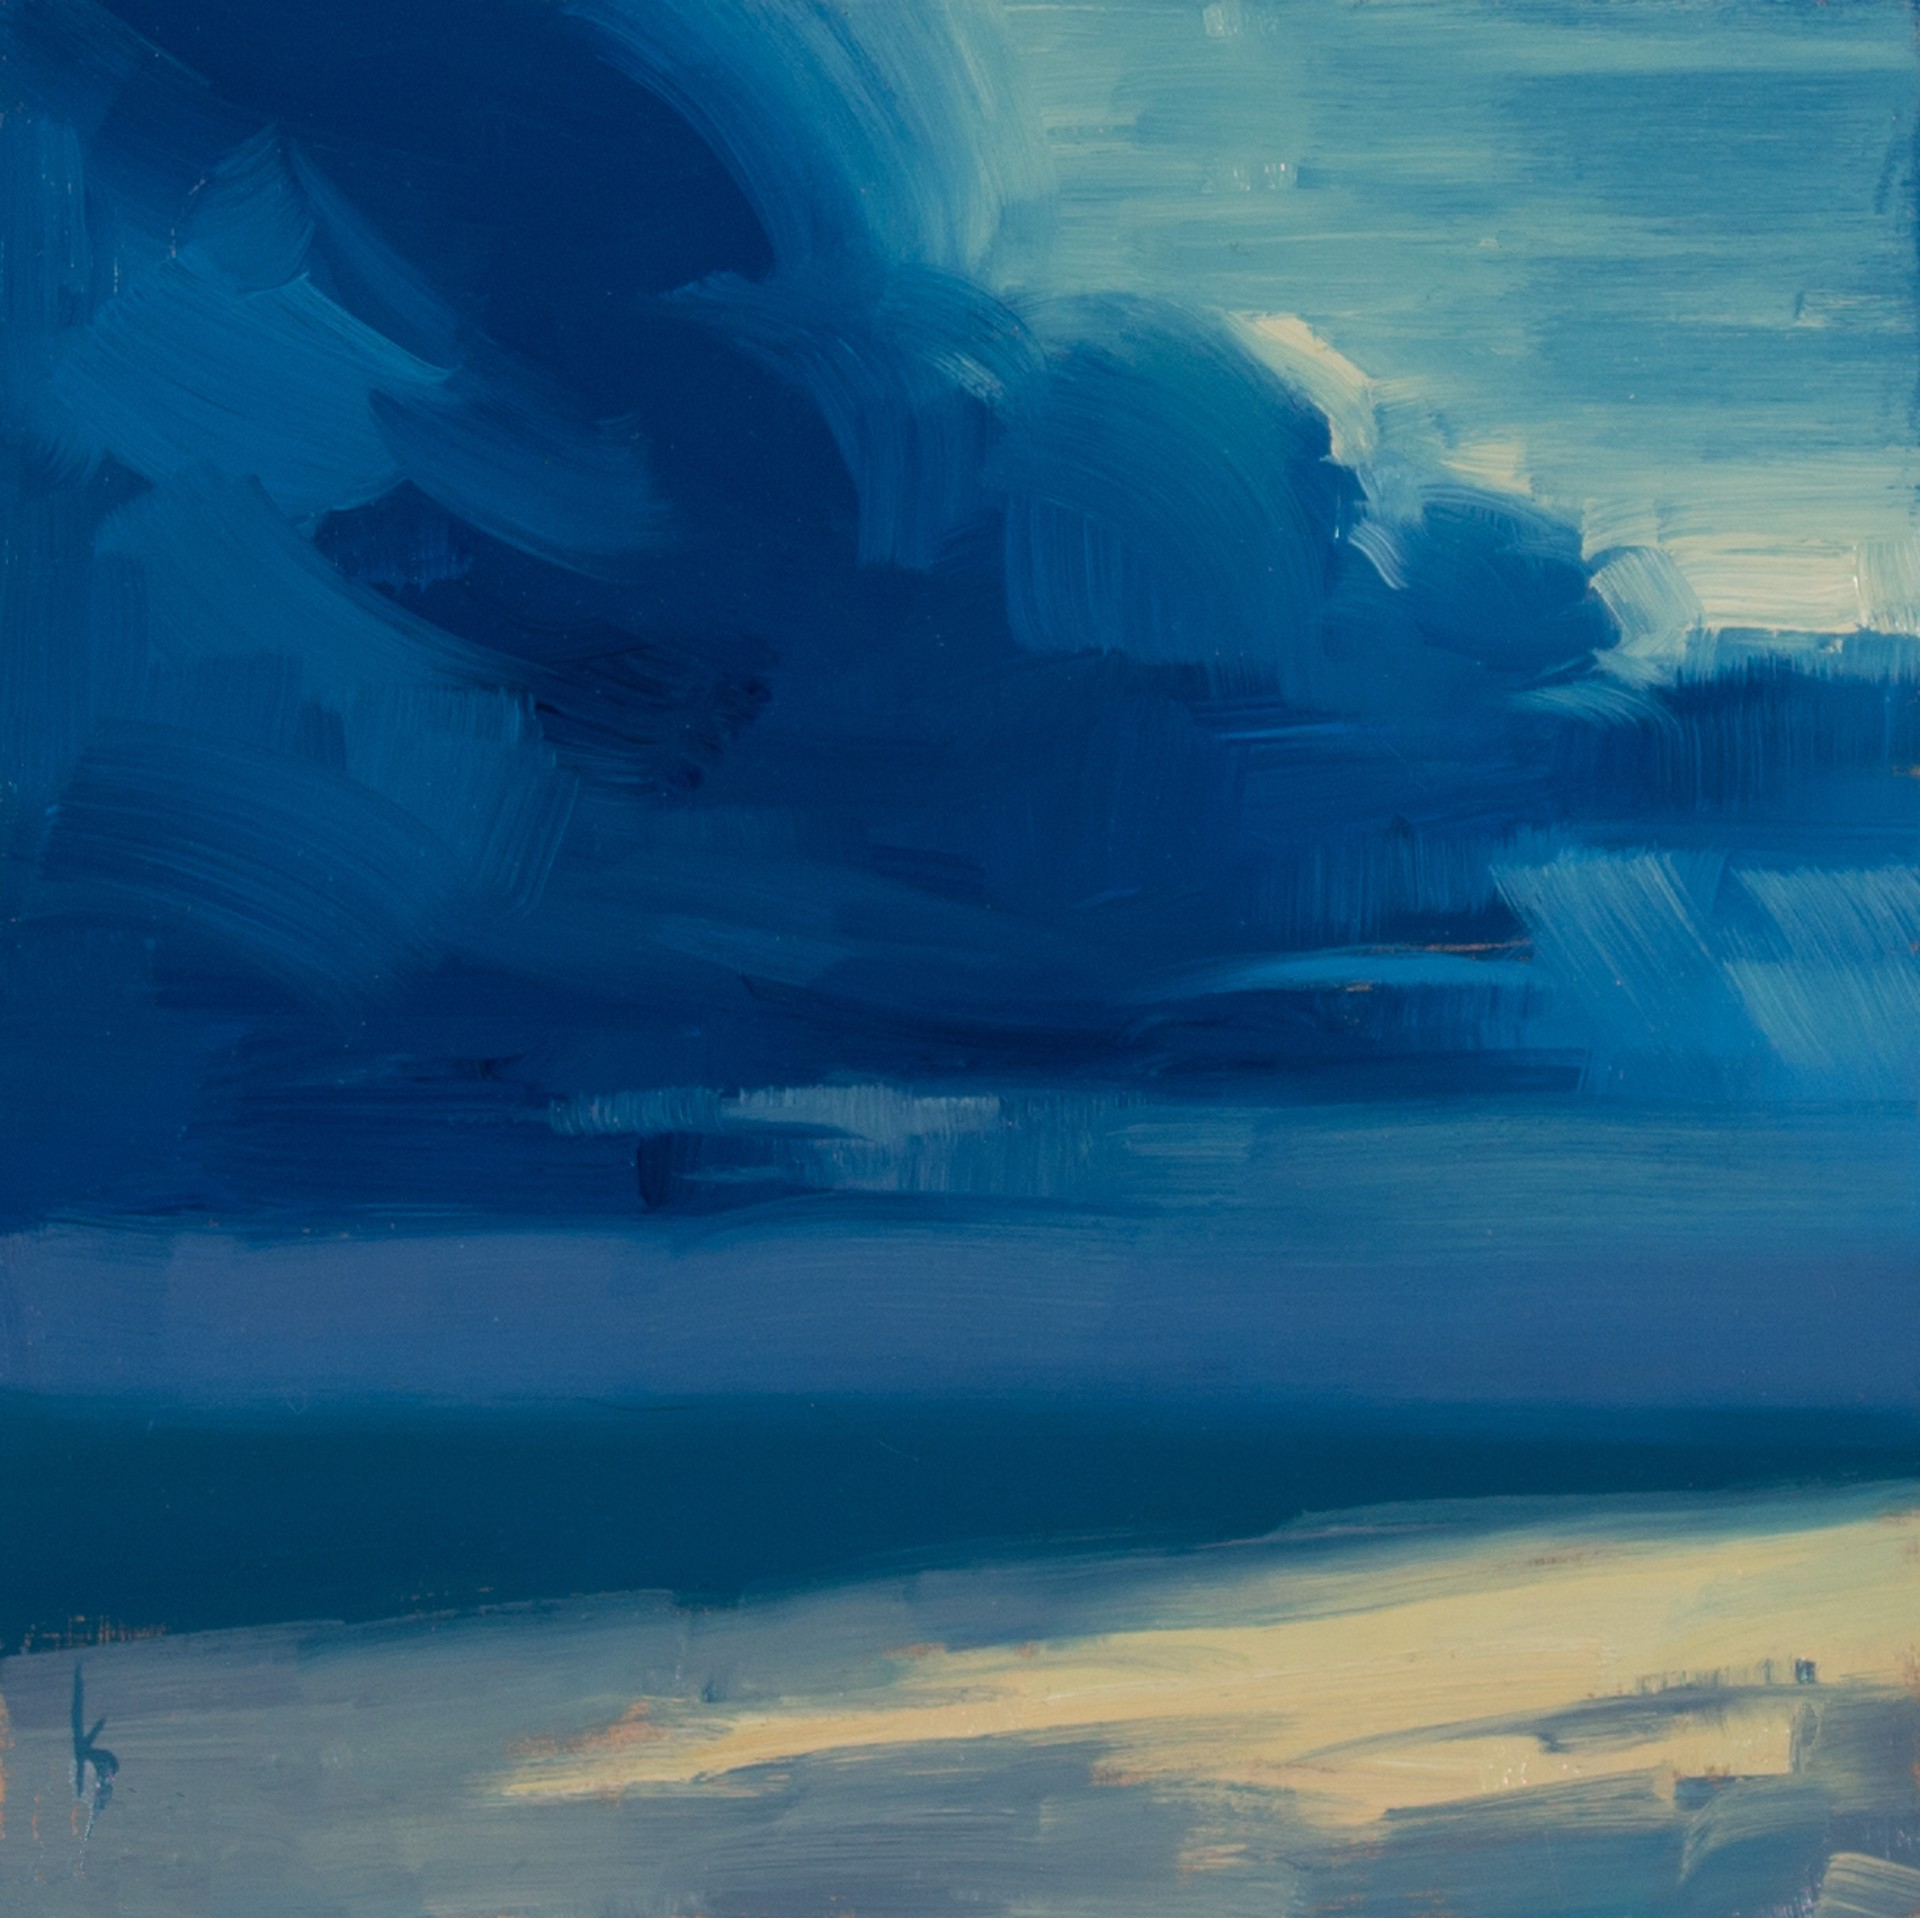 Storm on the Sea by Kirsten Savage